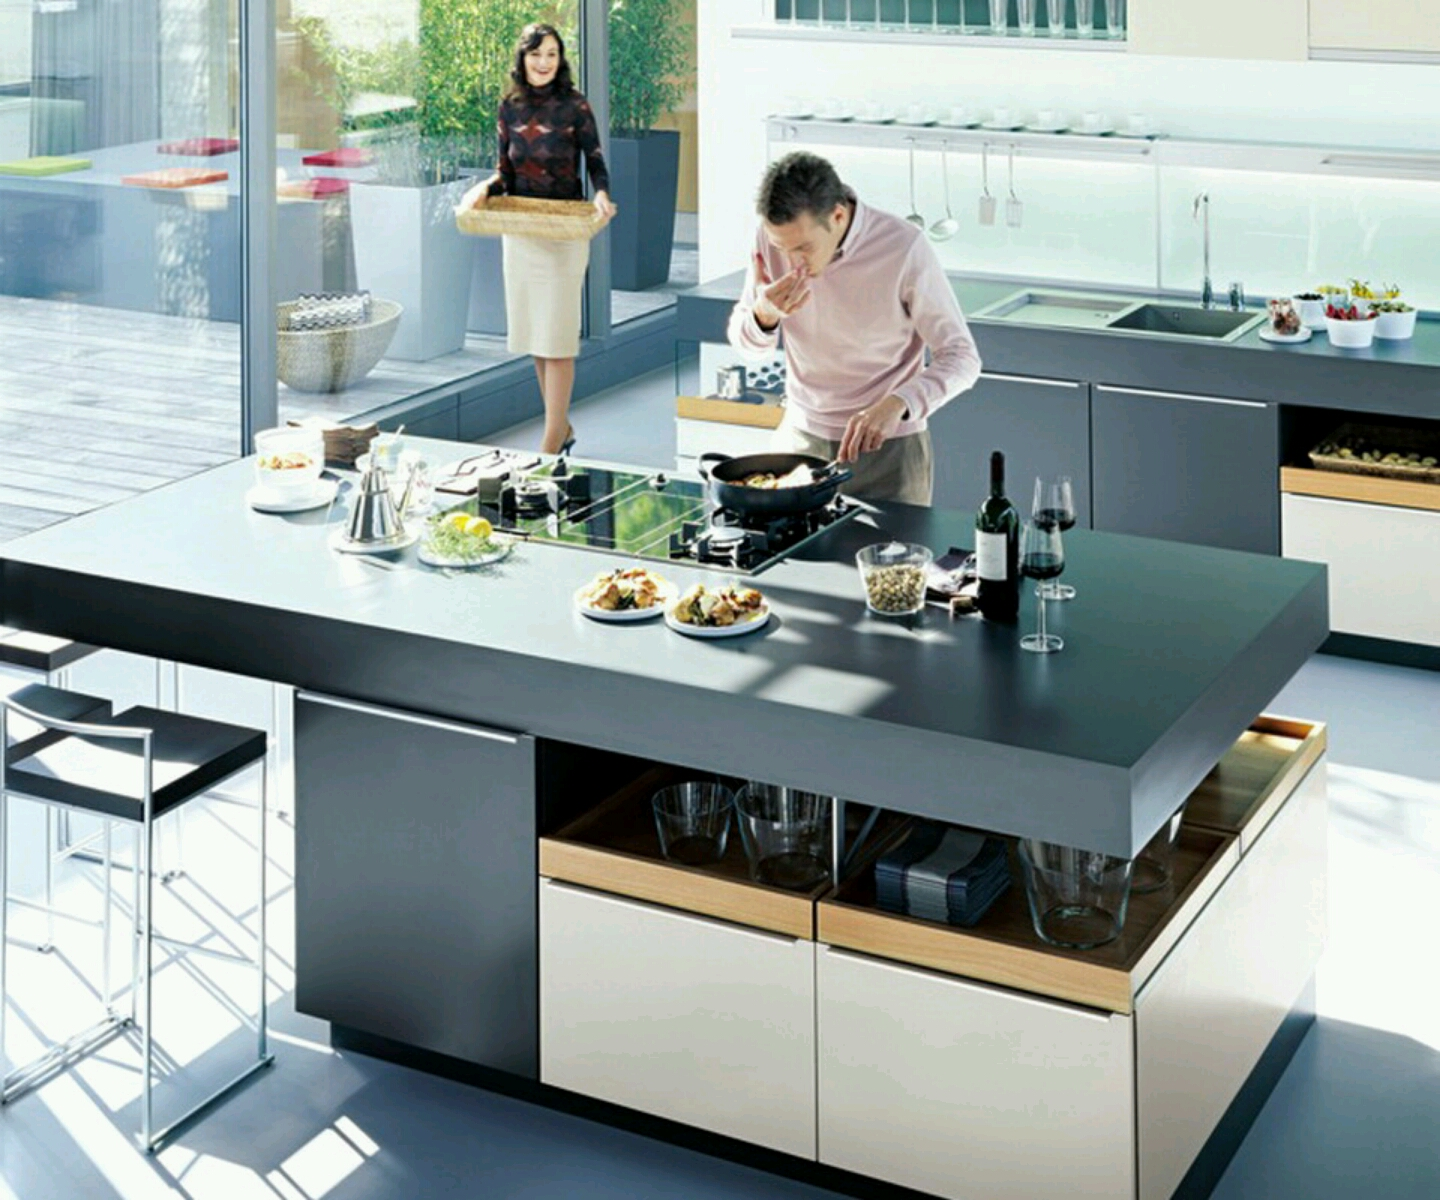 New Home Designs Latest Modern Kitchen Designs Ideas: New Home Designs Latest.: Modern Kitchen Designs Ideas